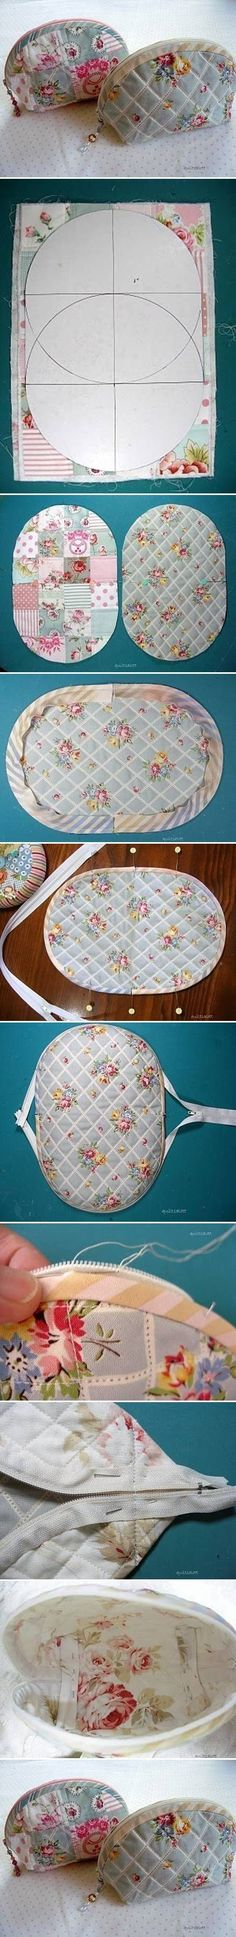 DIY Sew Makeup Bag… I'm thinking this is a great pattern idea for placemats. DIY Sew Makeup Bag… I Sewing Hacks, Sewing Tutorials, Sewing Patterns, Free Tutorials, Knitting Patterns, Purse Patterns, Craft Tutorials, Fabric Crafts, Sewing Crafts